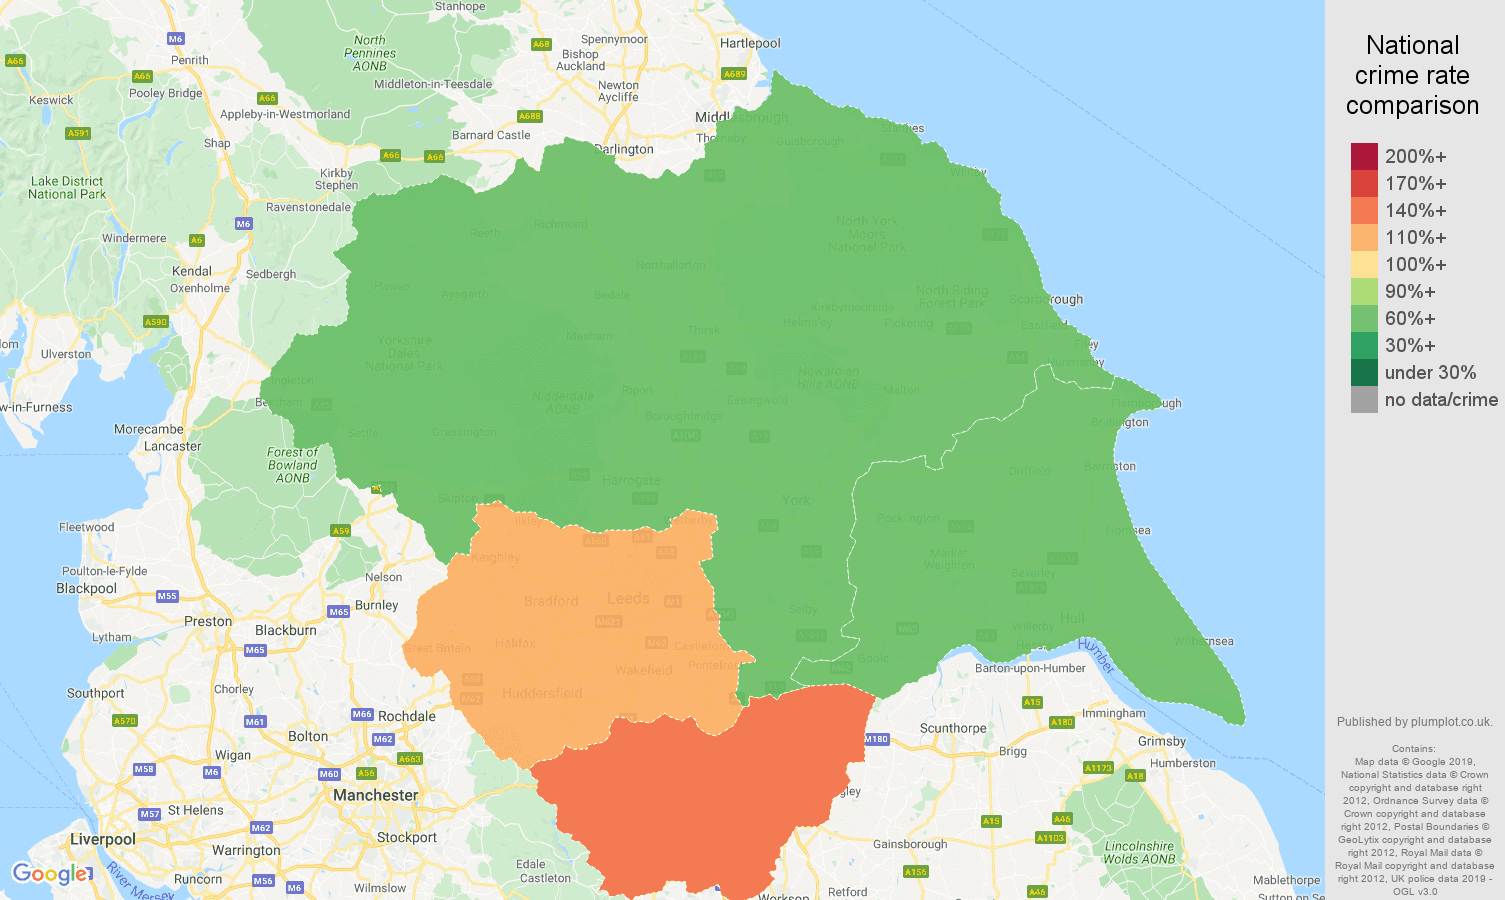 Yorkshire possession of weapons crime rate comparison map